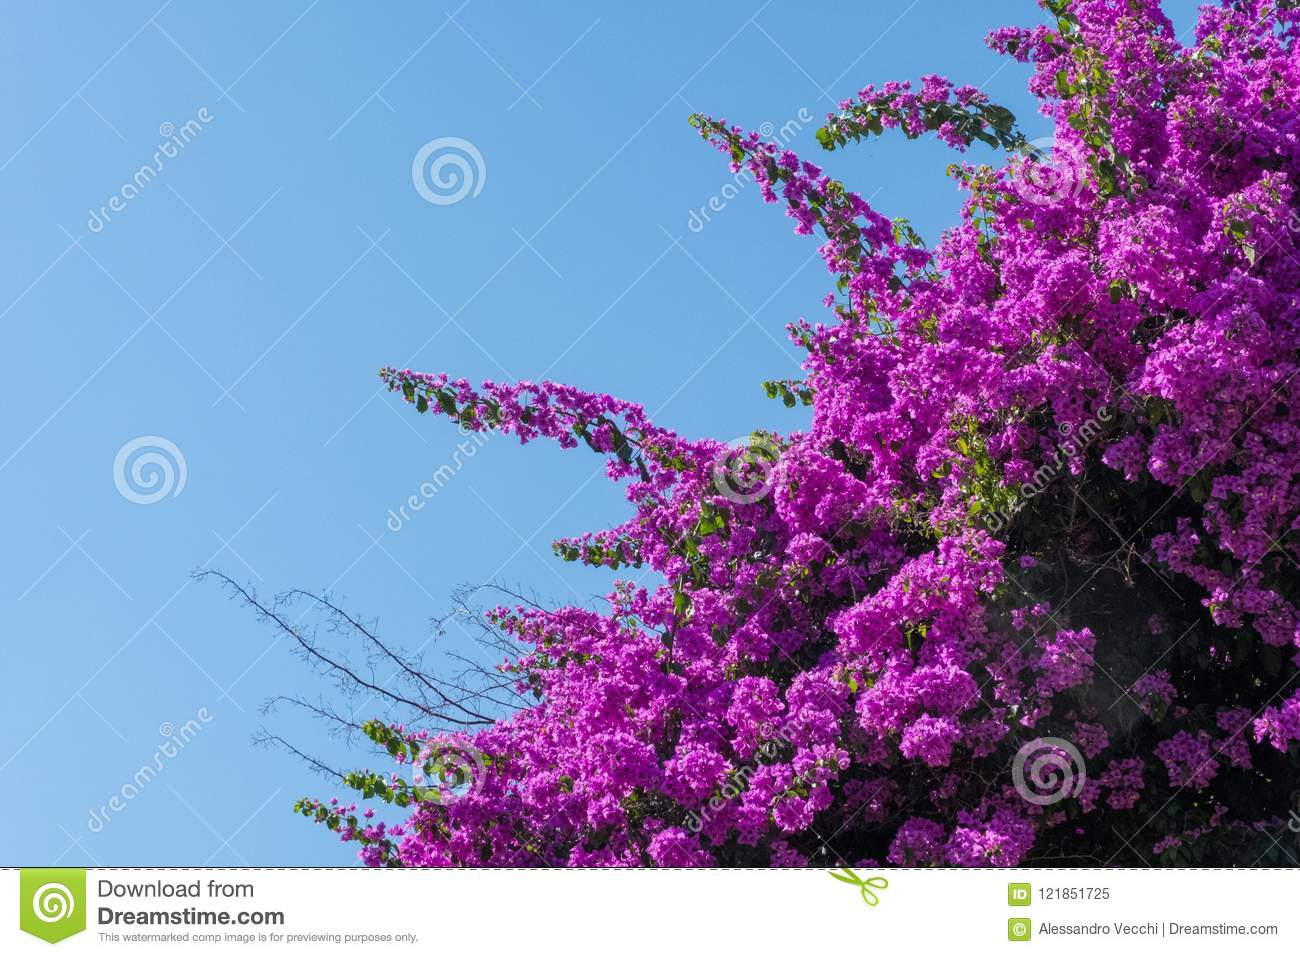 Bougainvillea Wallpaper Wallpaper Of A Bougainvillea Flower Tree And Blue Sky In The